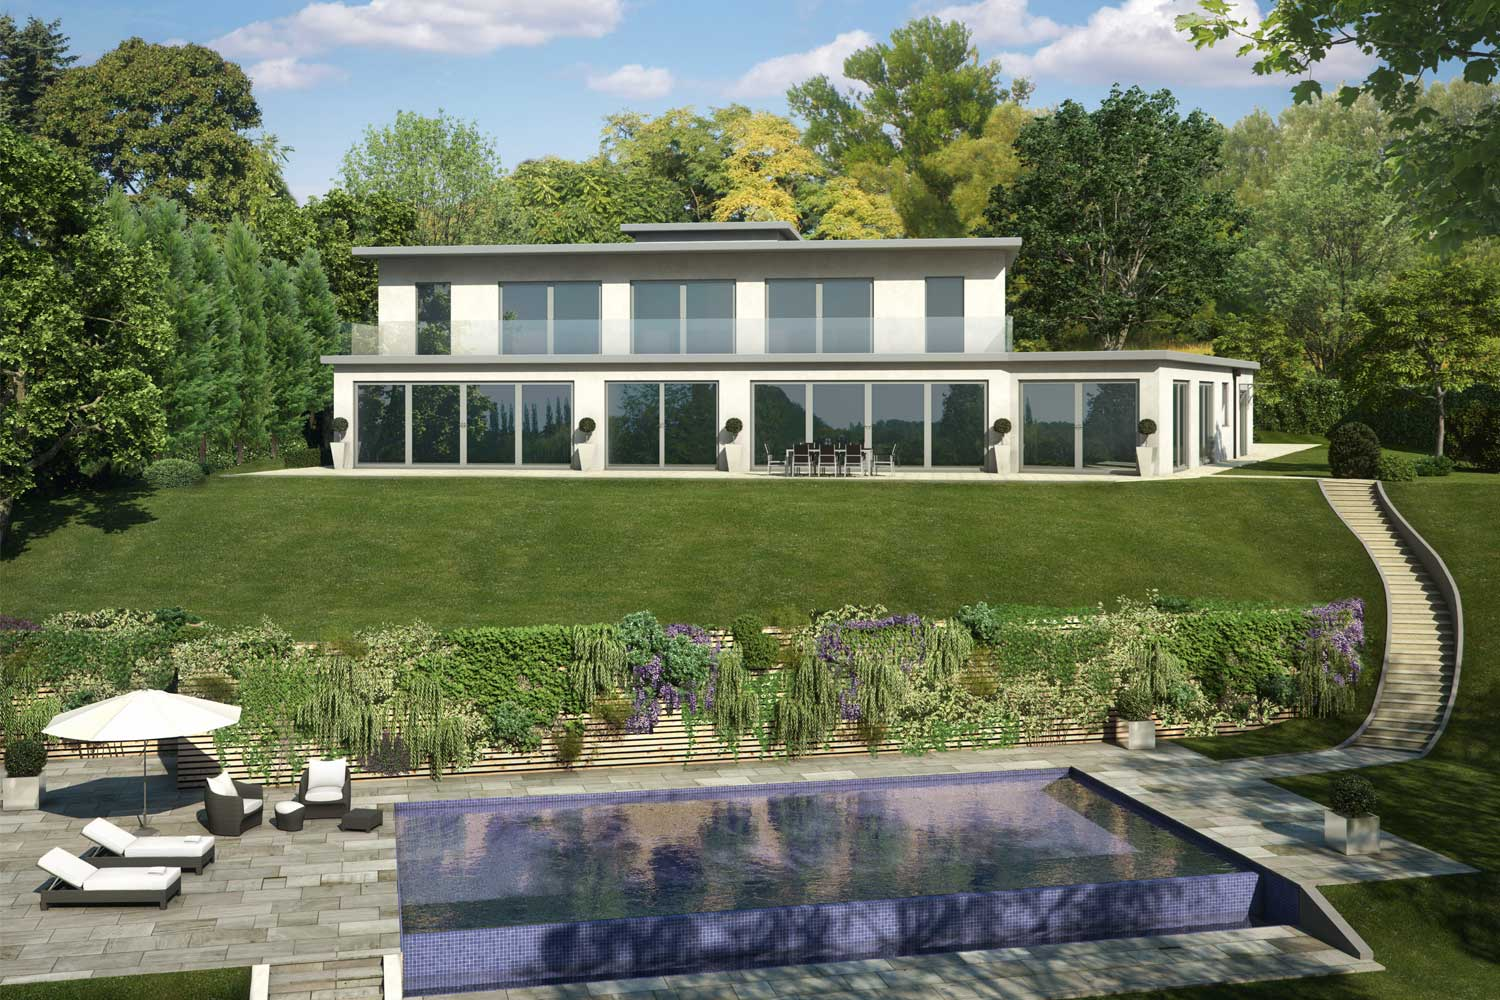 Property CGI of pool and garden